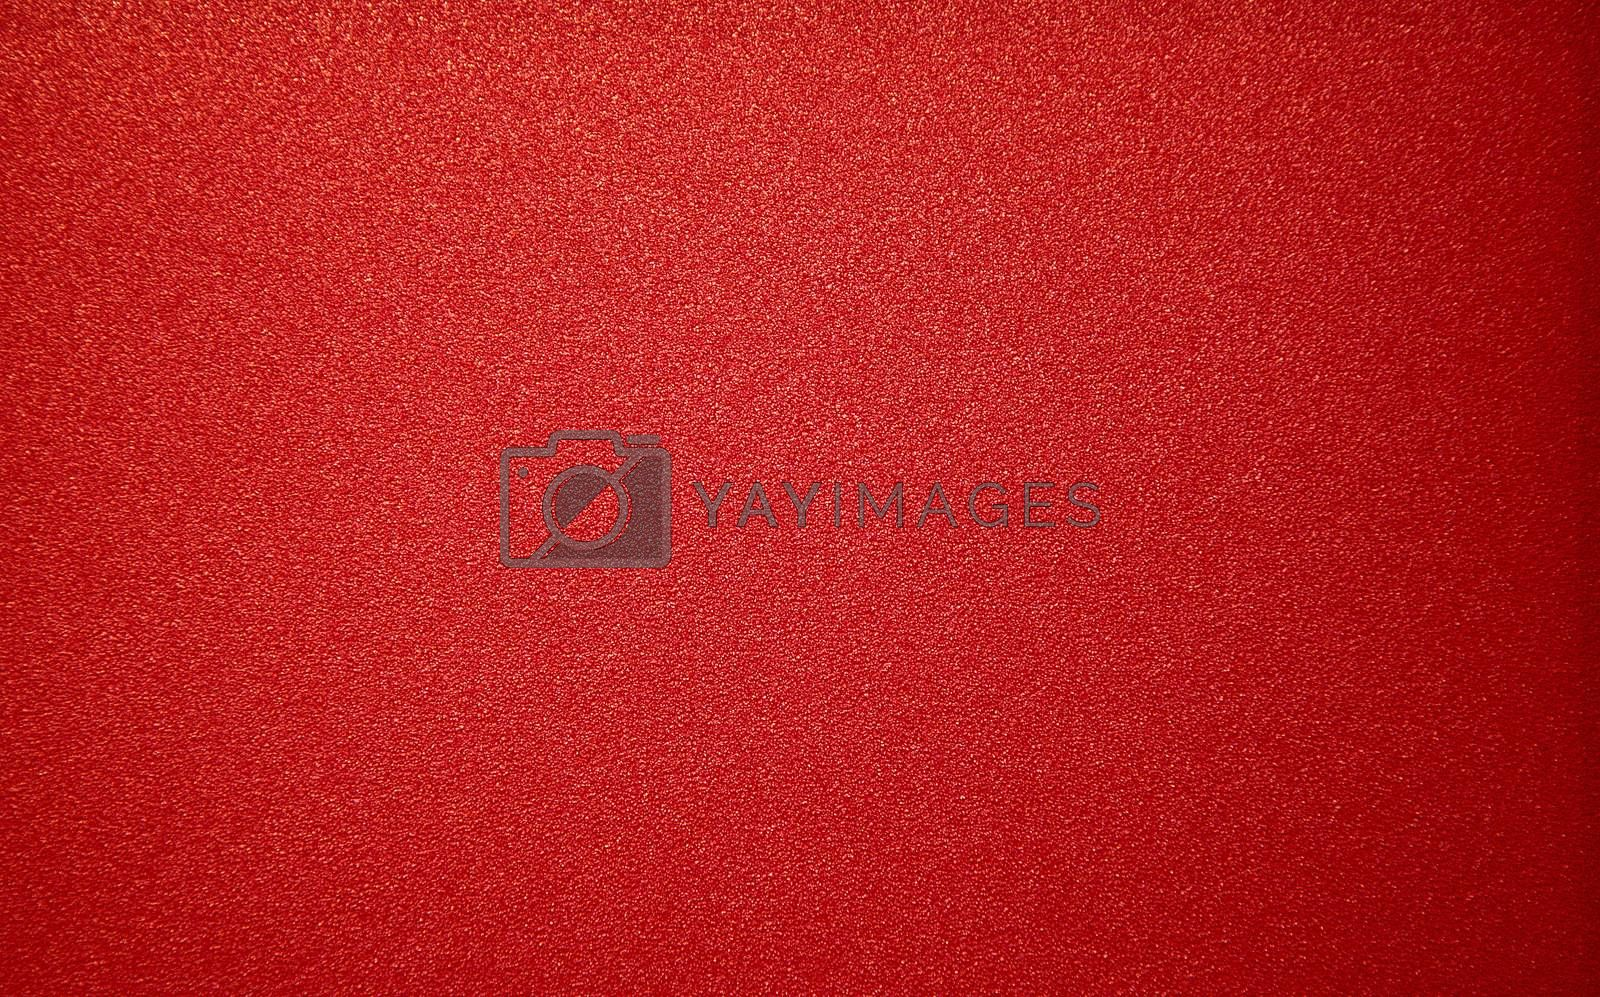 Red monochrome brush background. Texture pattern